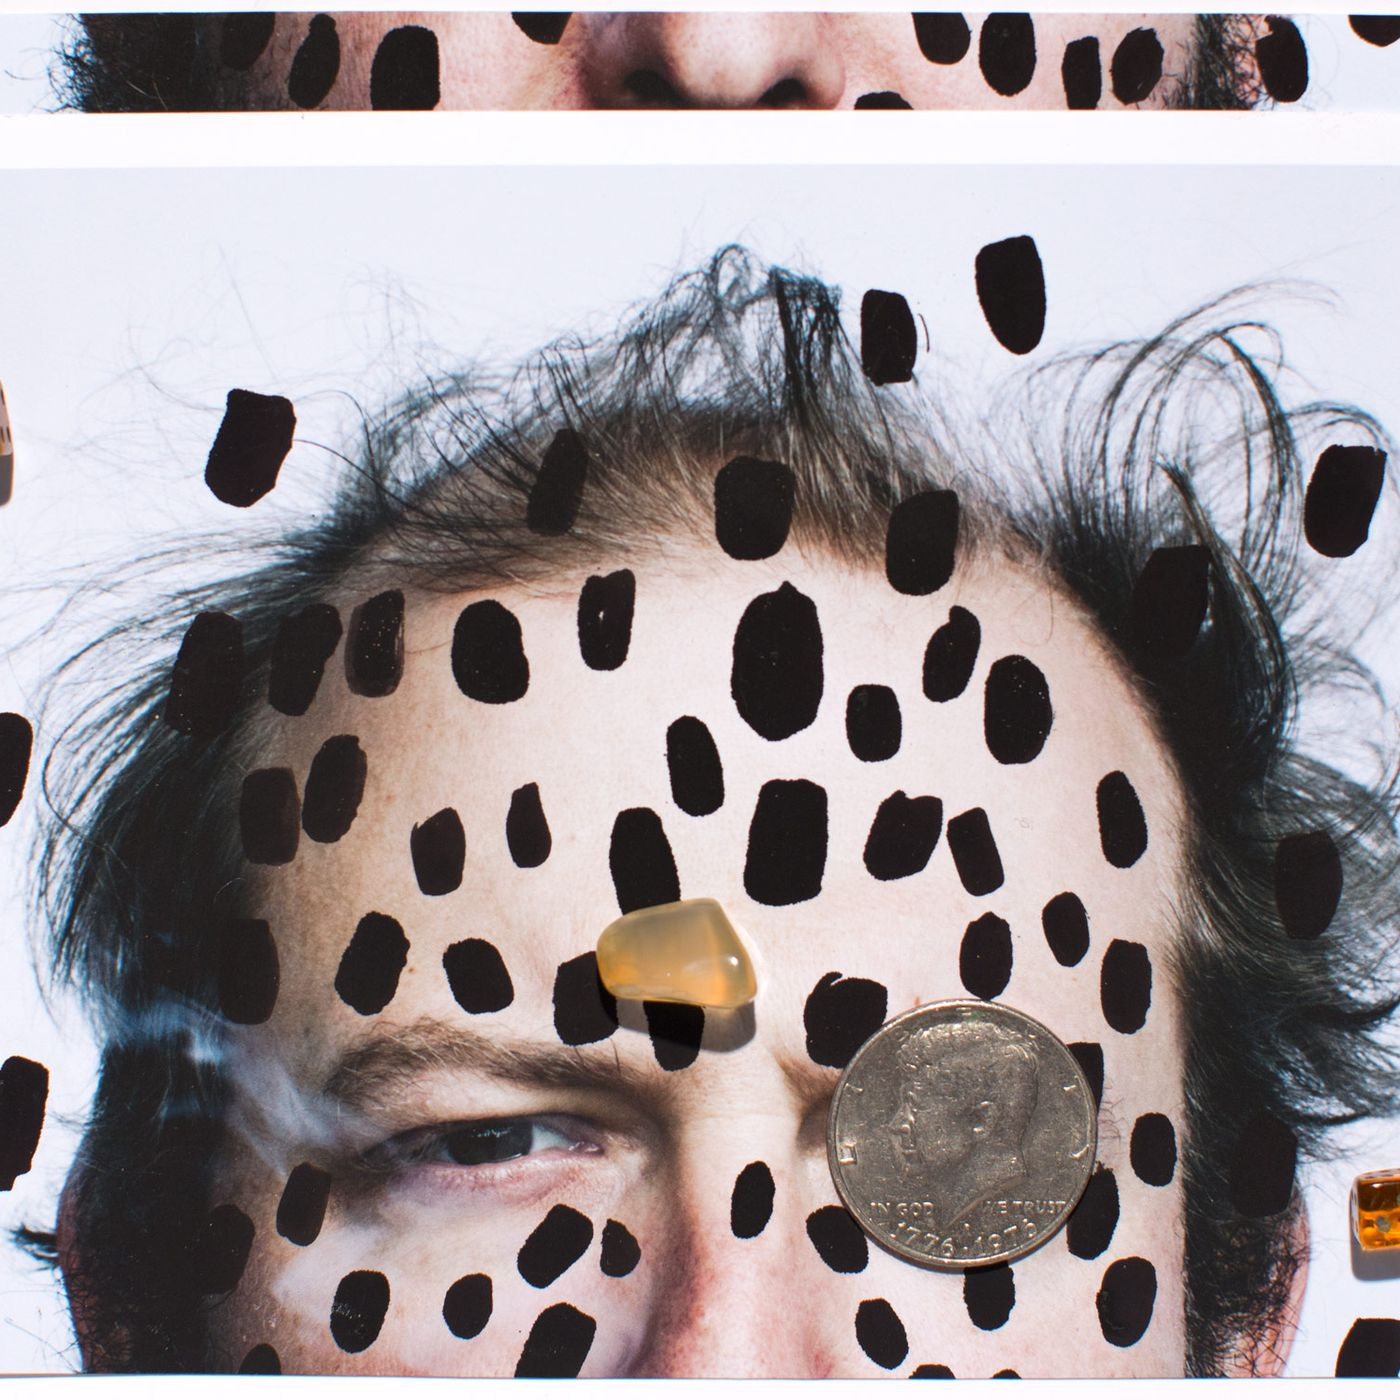 Bon Iver's 22, A Million is the next step in the band's